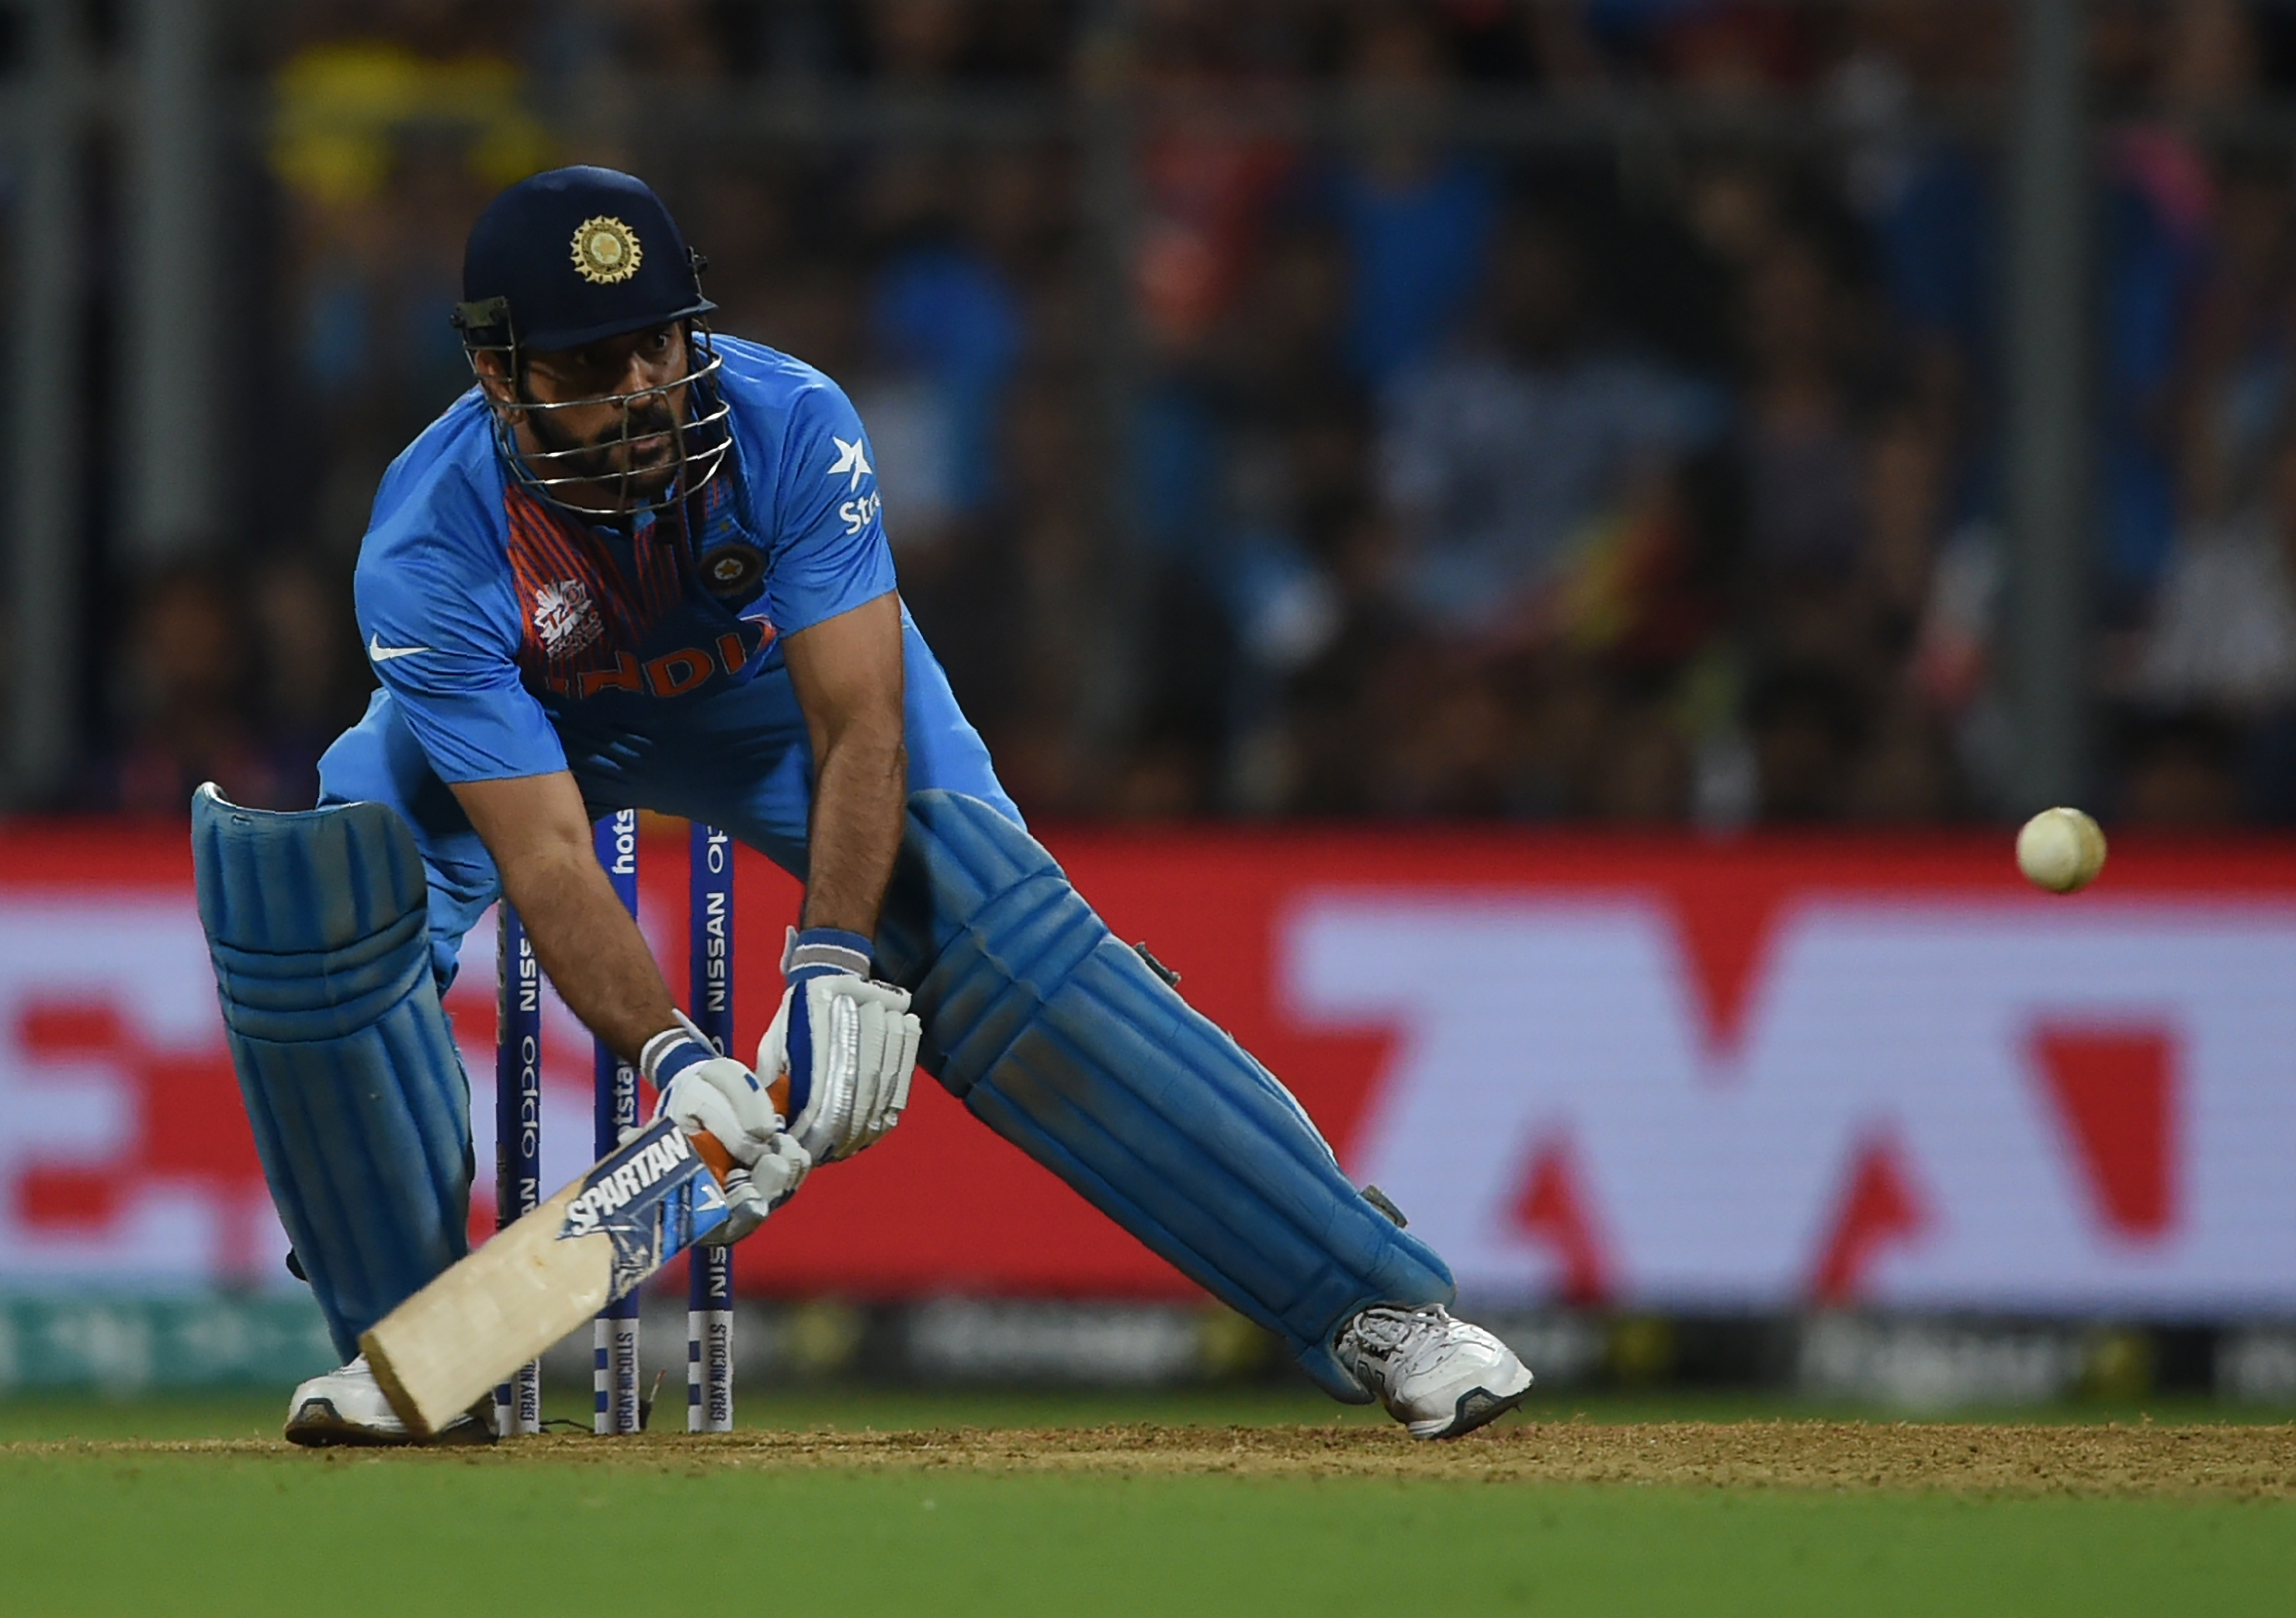 India's captain Mahendra Singh Dhoni plays a shot during the World T20 semi-final match between India and West Indies at The Wankhede Cricket Stadium in Mumbai on March 31, 2016. / AFP / INDRANIL MUKHERJEE